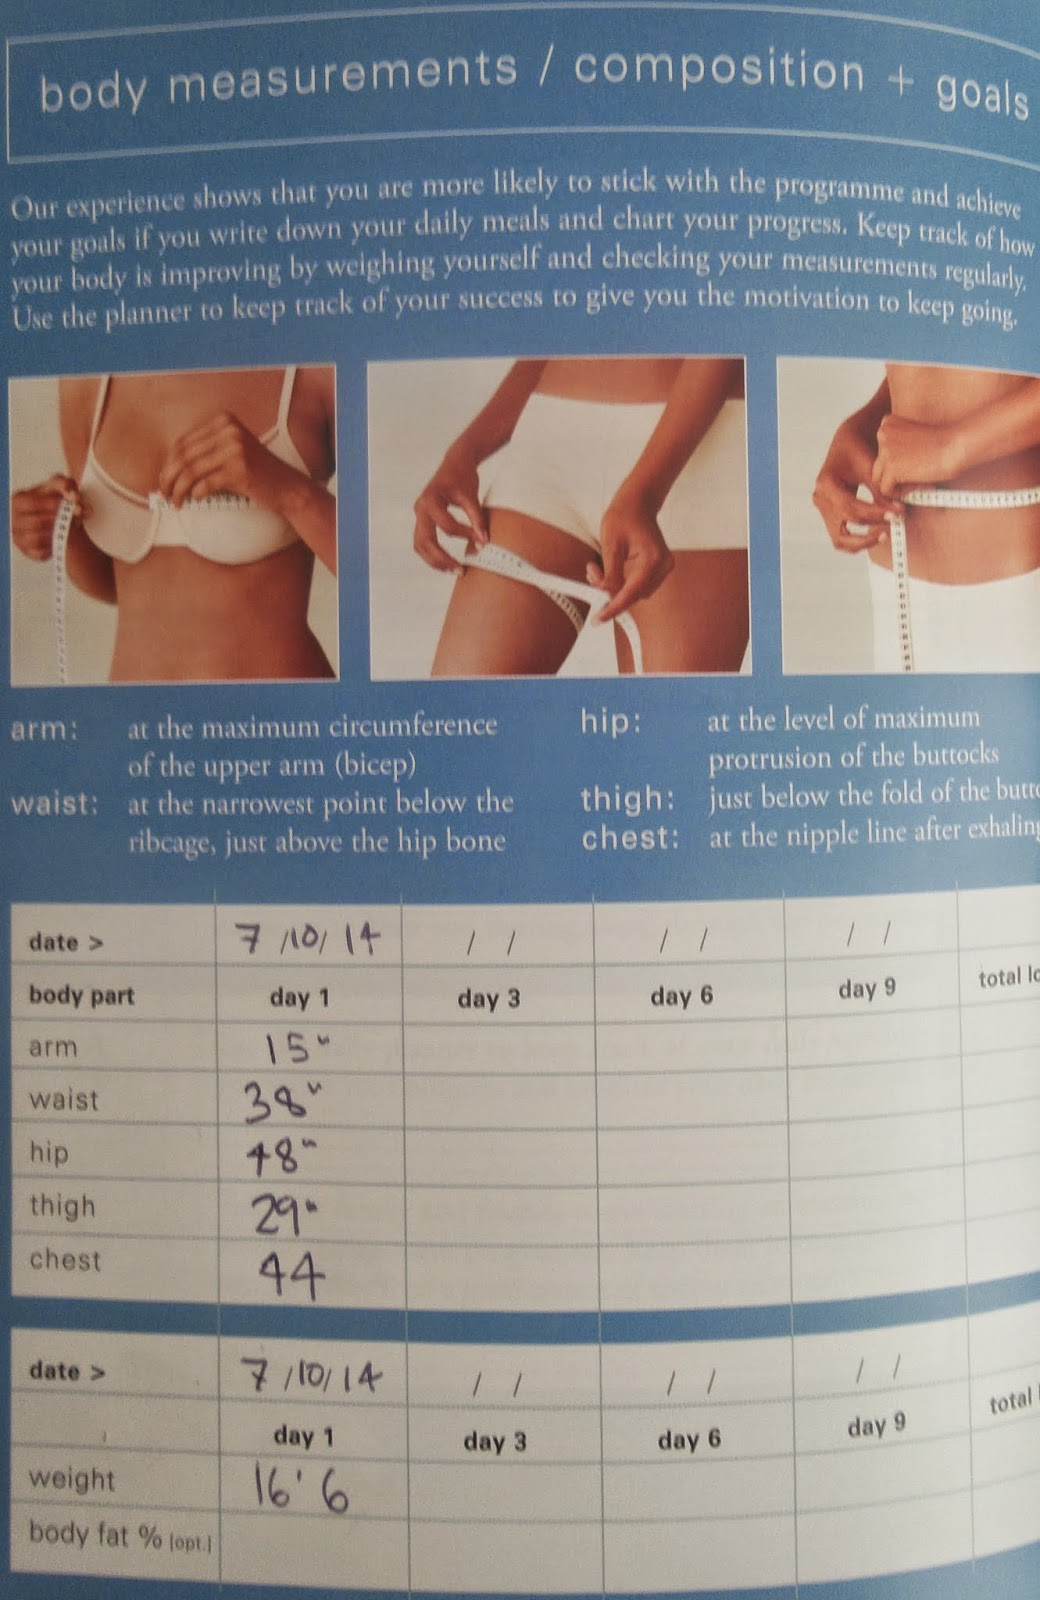 Clean 9 Day 1 Measurements, inch loss on clean 9